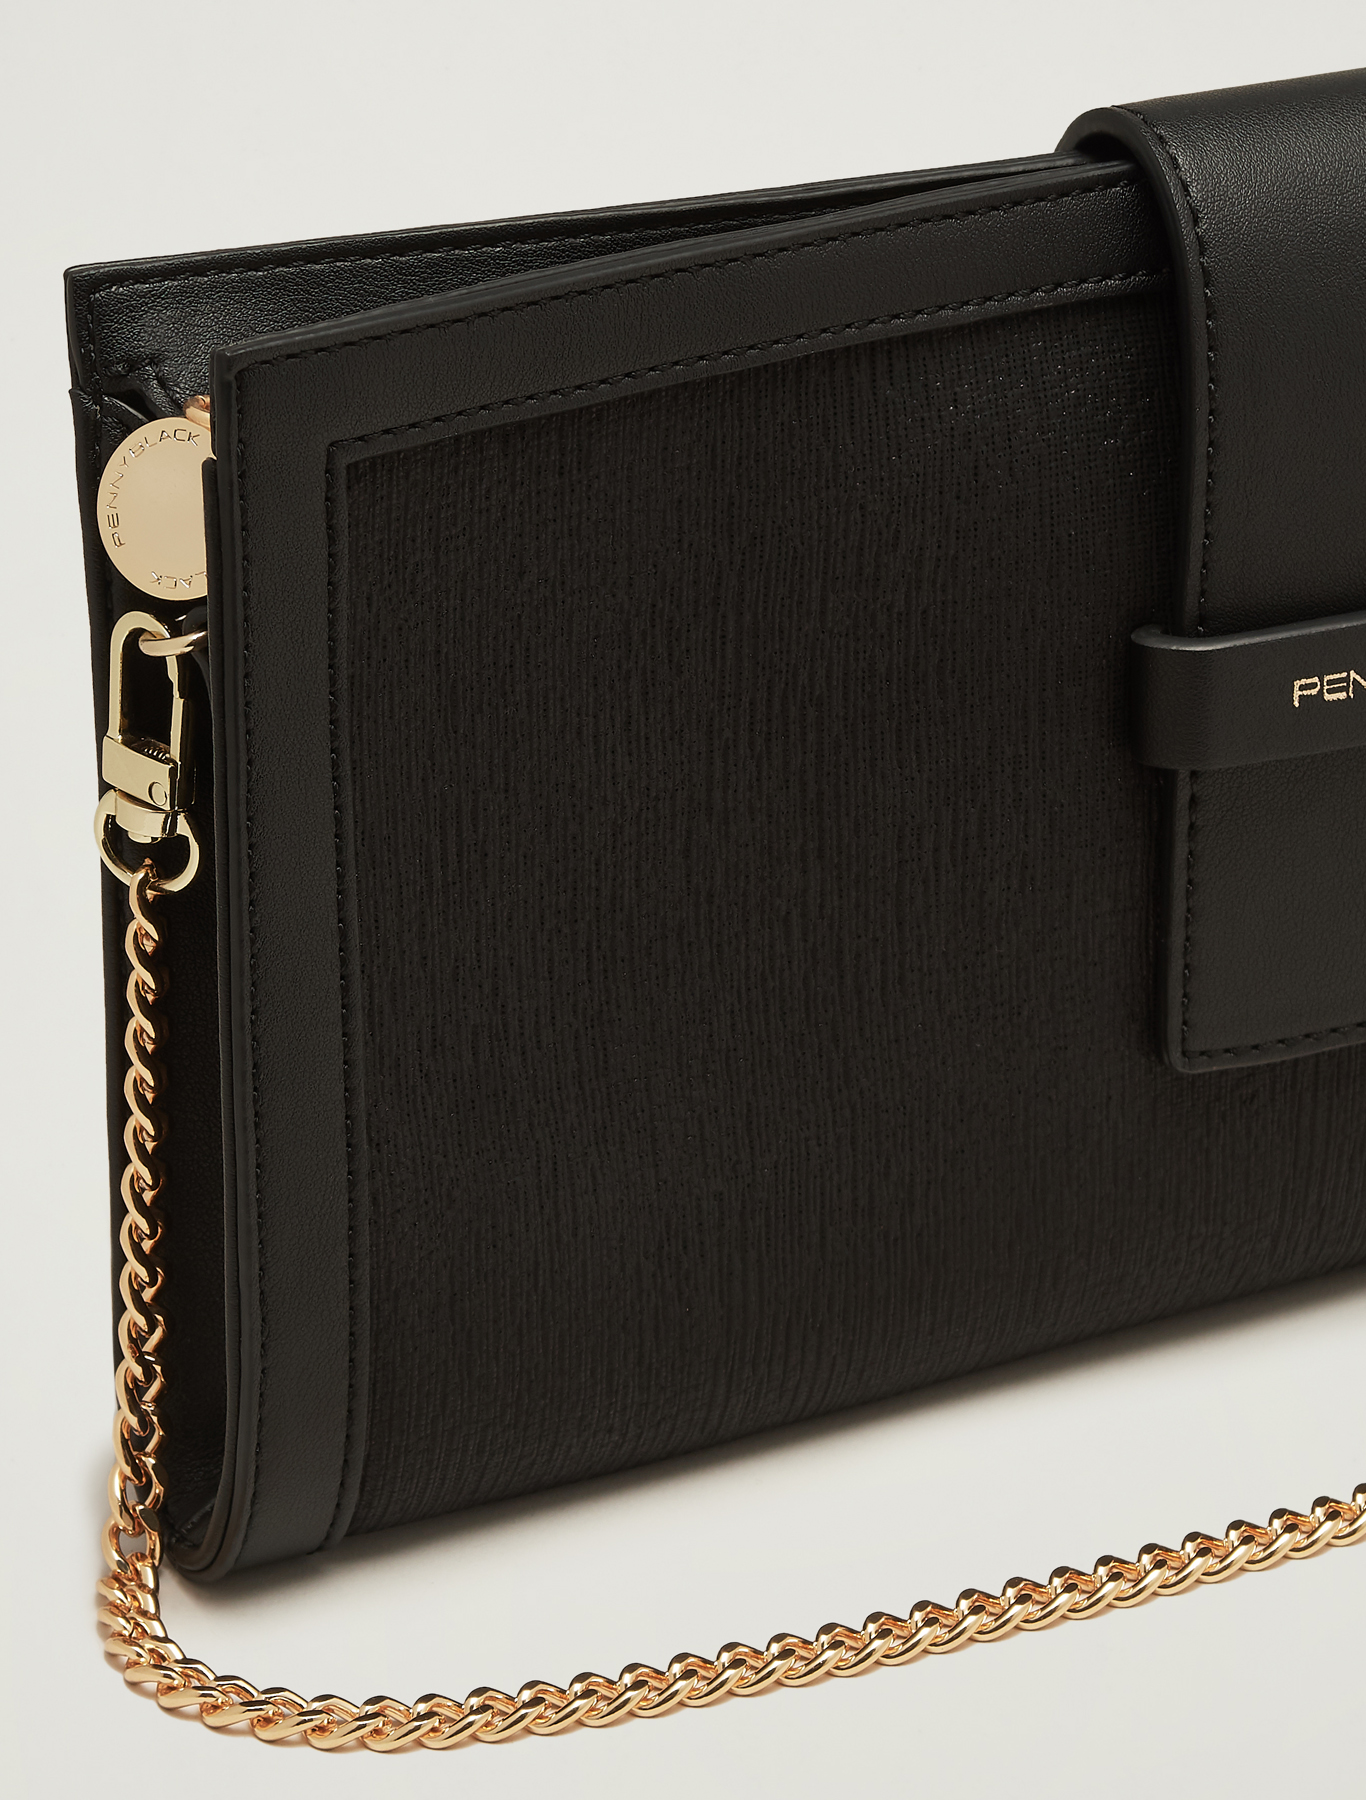 Lamé fabric clutch - black - pennyblack